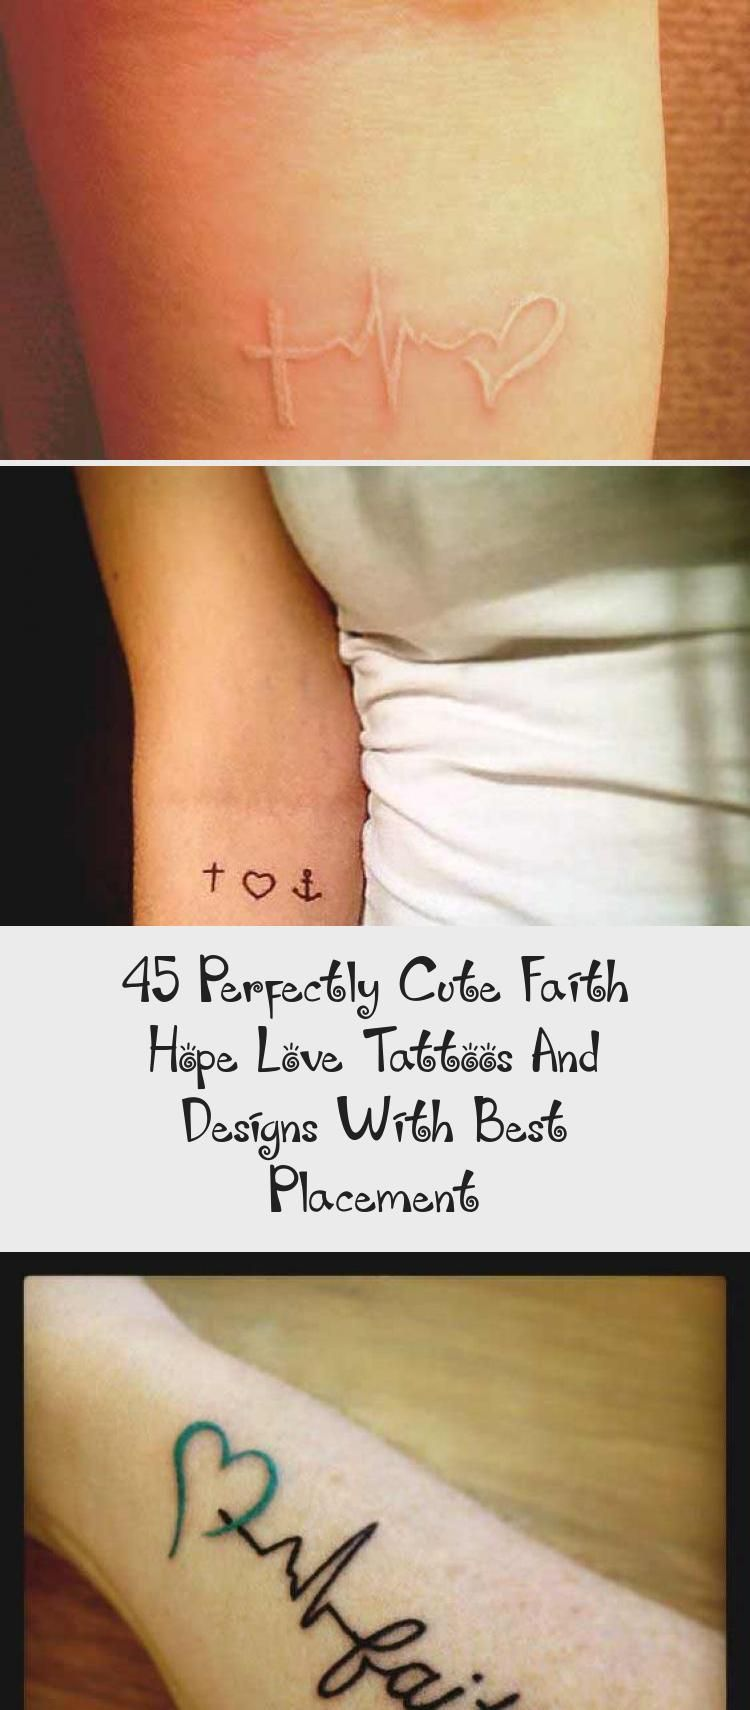 36+ Astonishing Tattoos that mean love and strength image HD